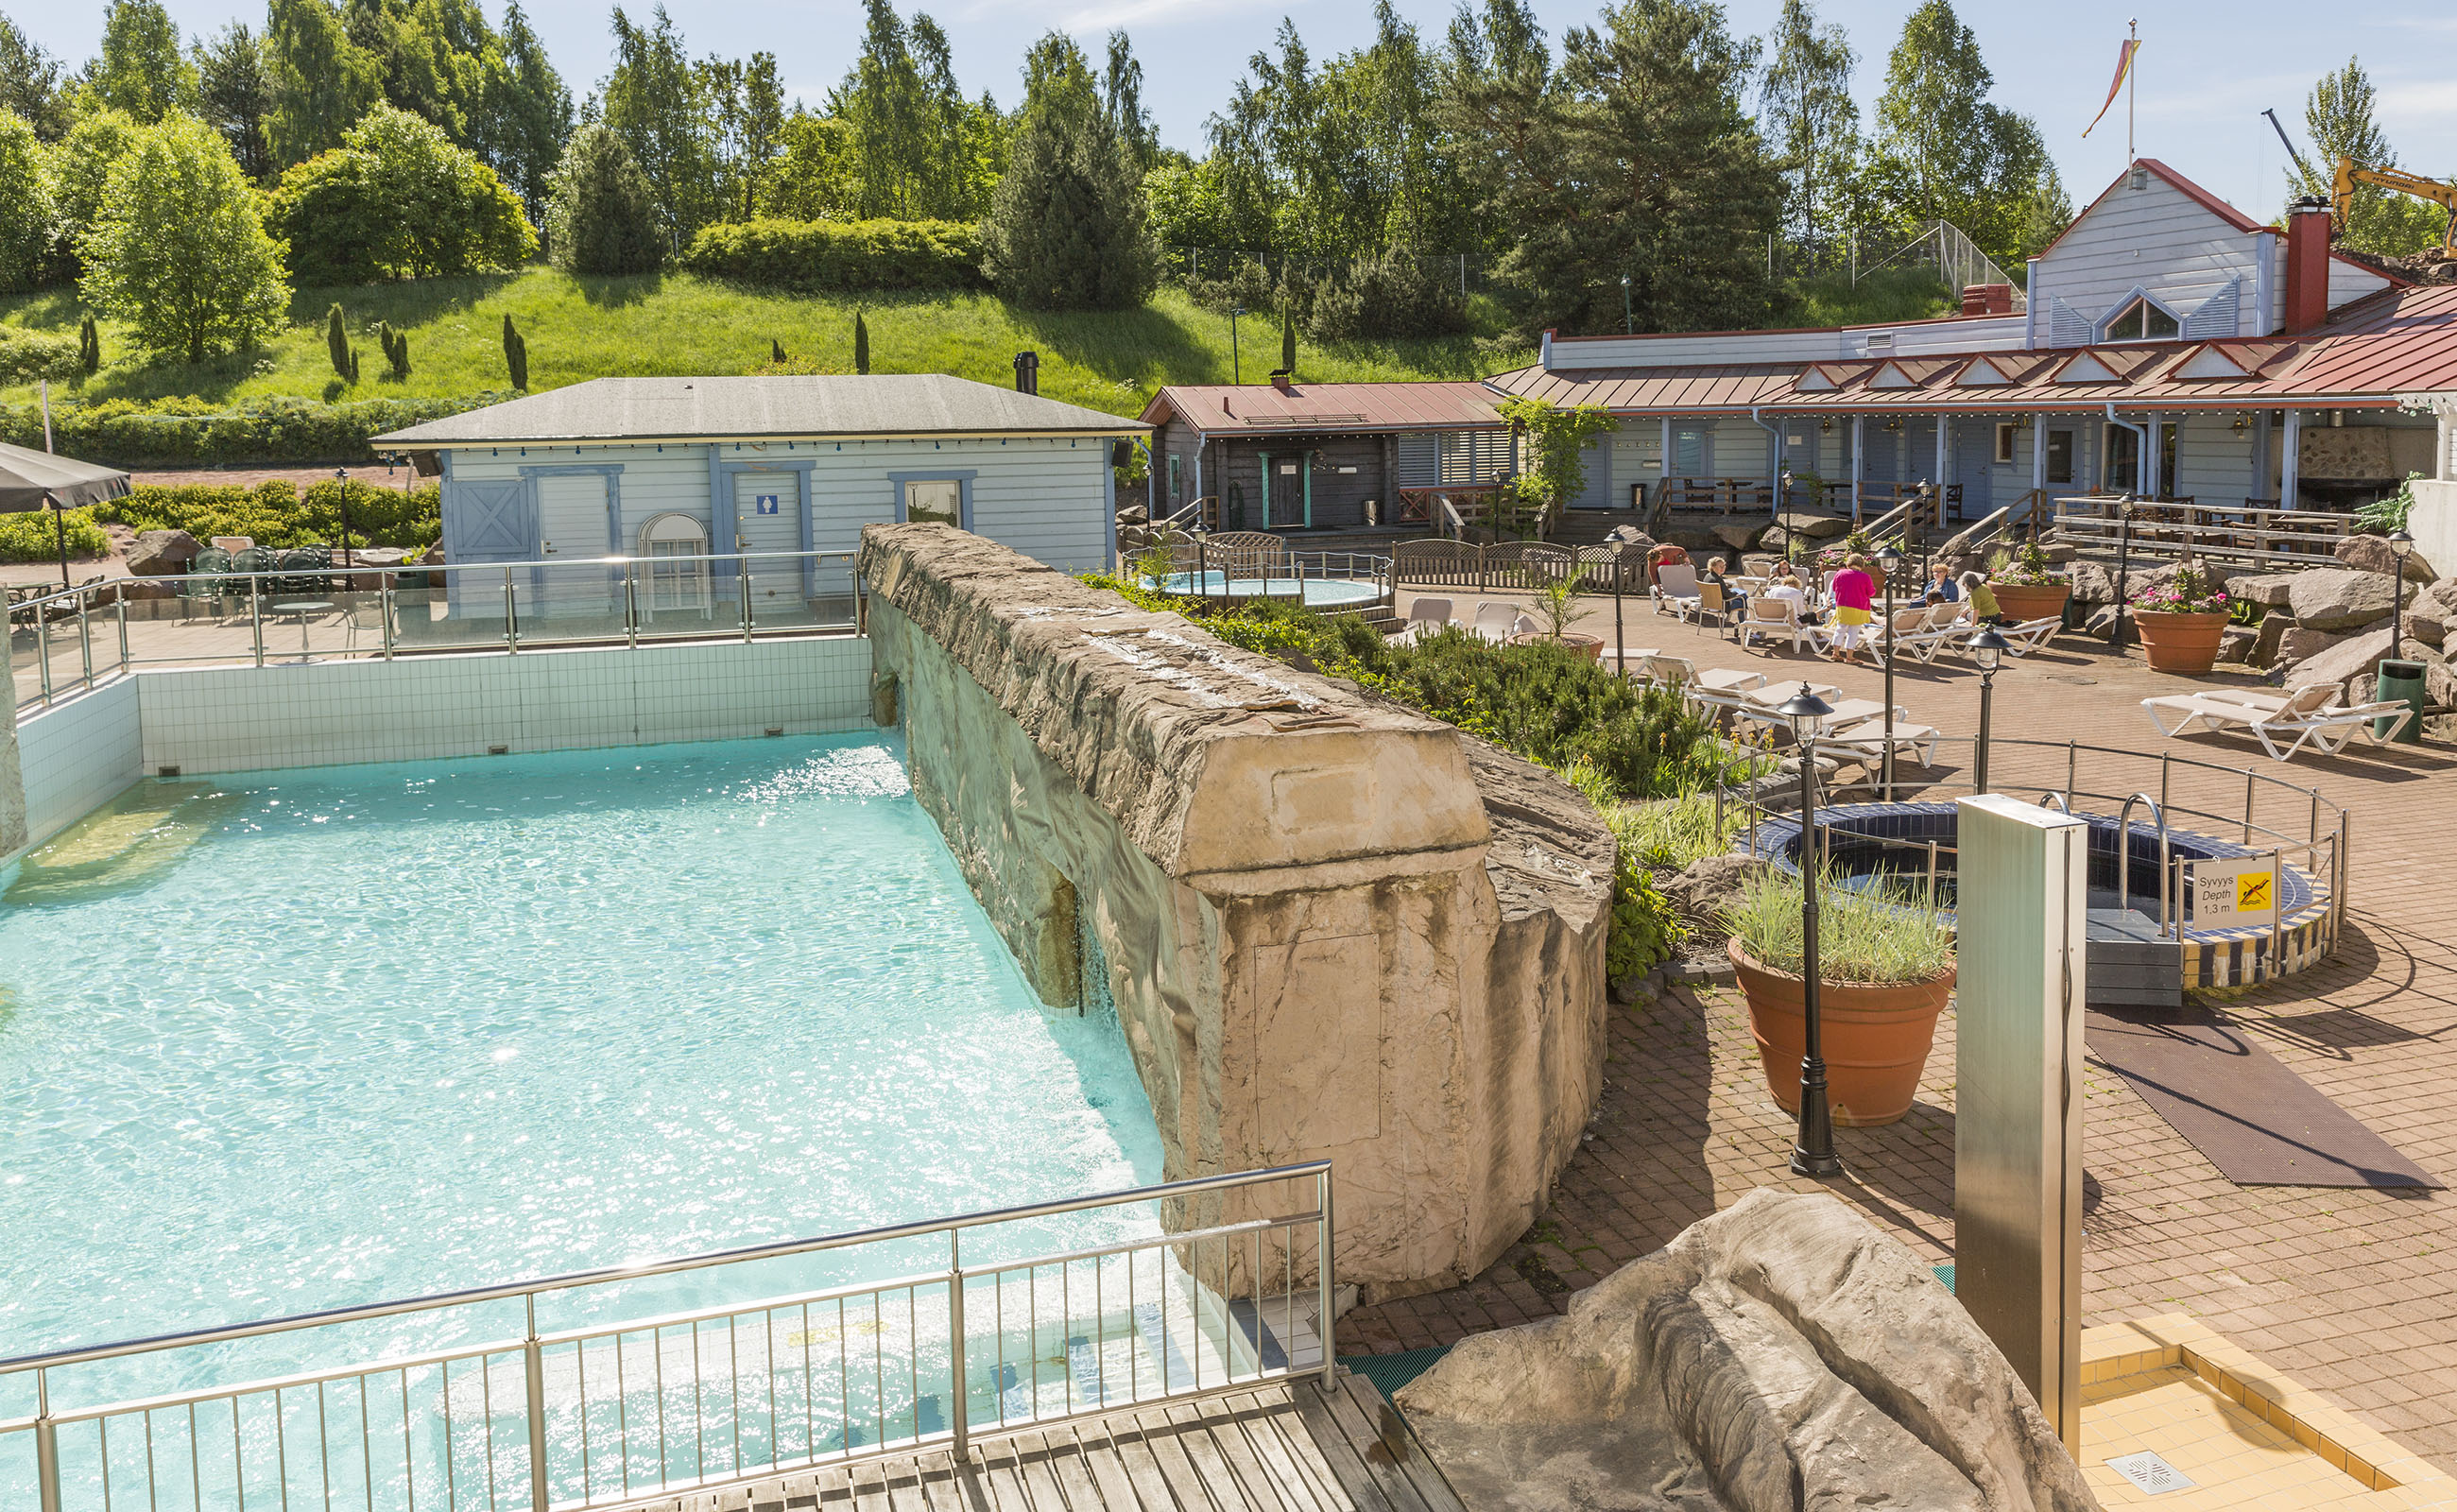 Jacuzzi Pool Preise Spa Prices Caribia Holiday Club Holiday Club